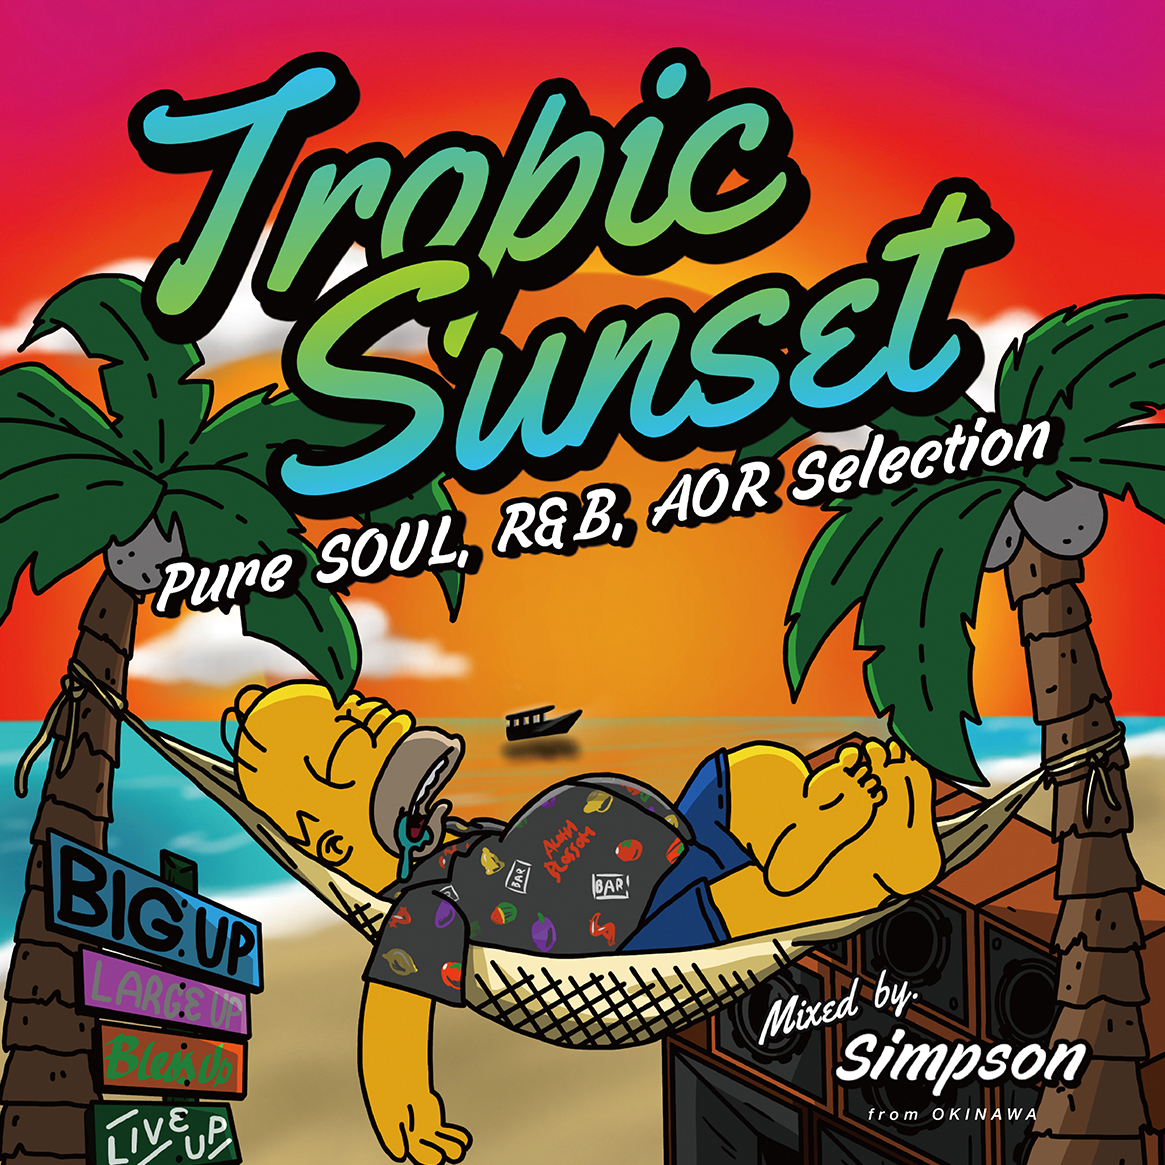 Simpson from OKINAWA / Tropic Sunset